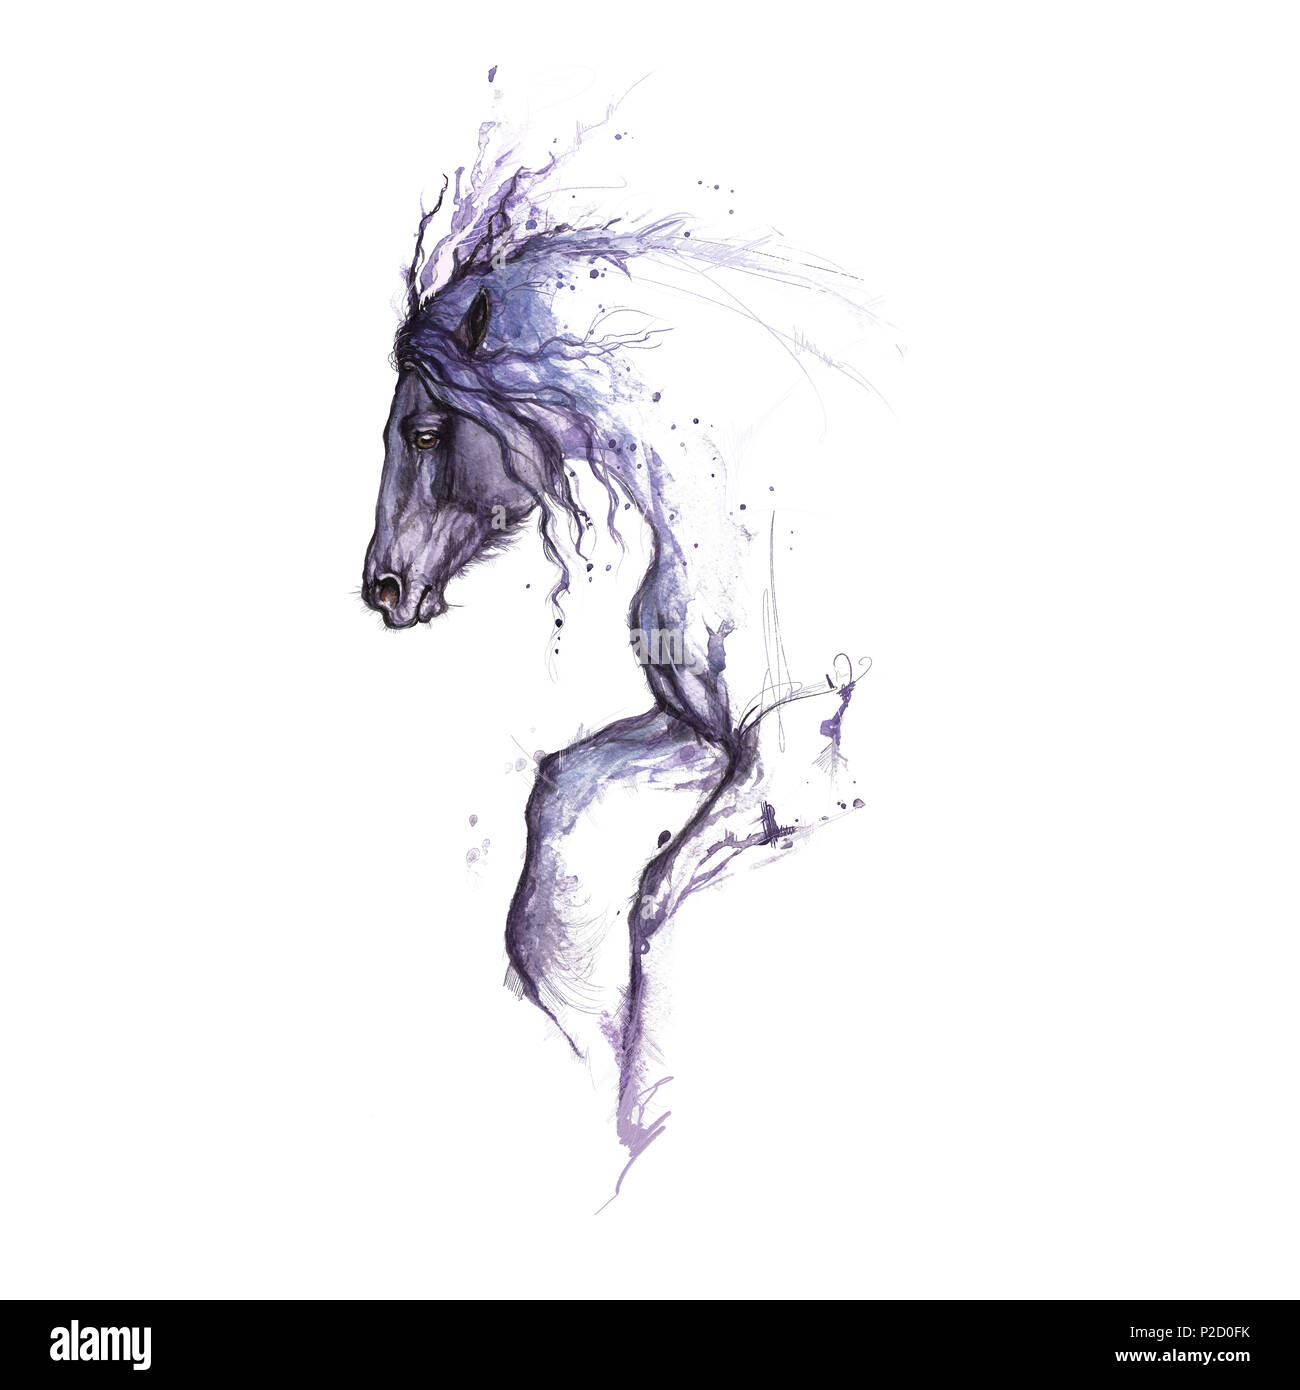 Watercolor Painting Of Horse Tattoo Design Stock Photo Alamy